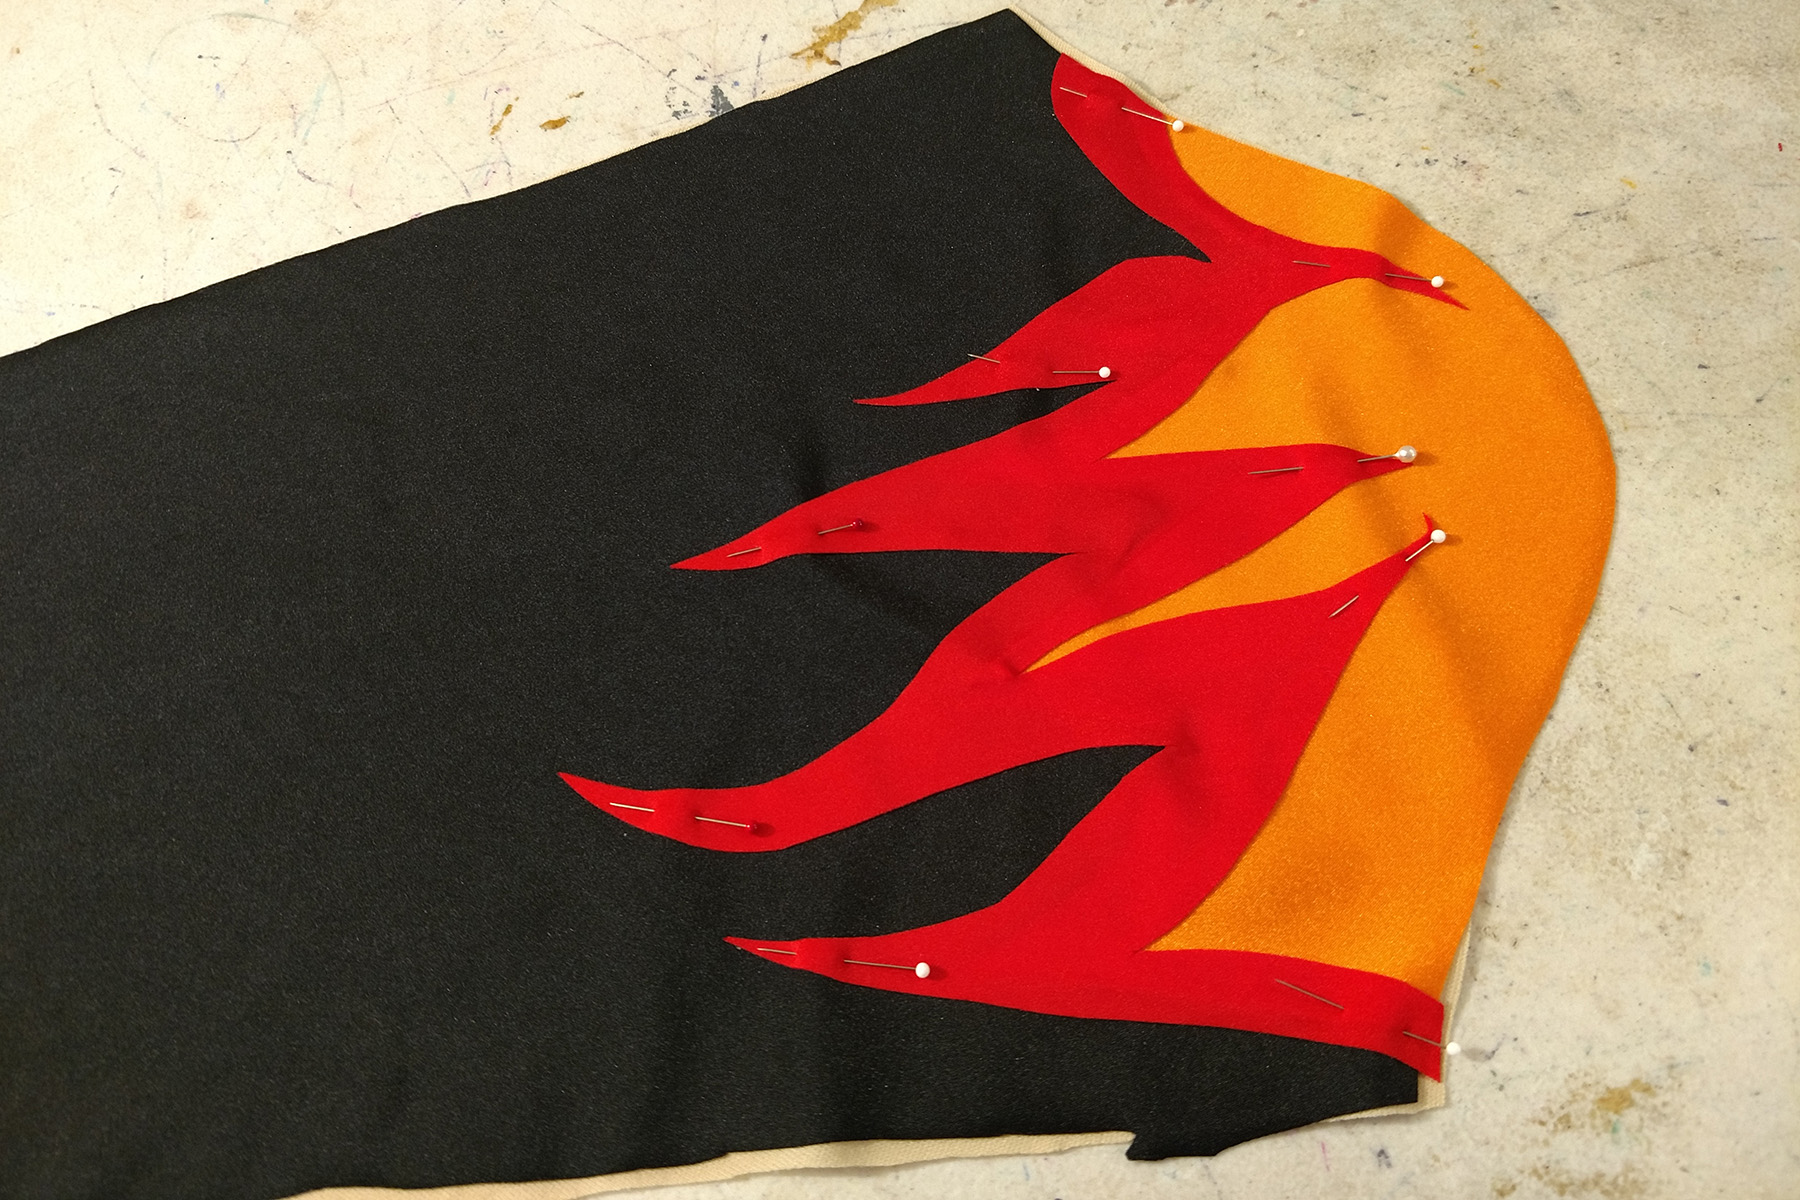 A black, red, and orange sleeve piece, pinned together.